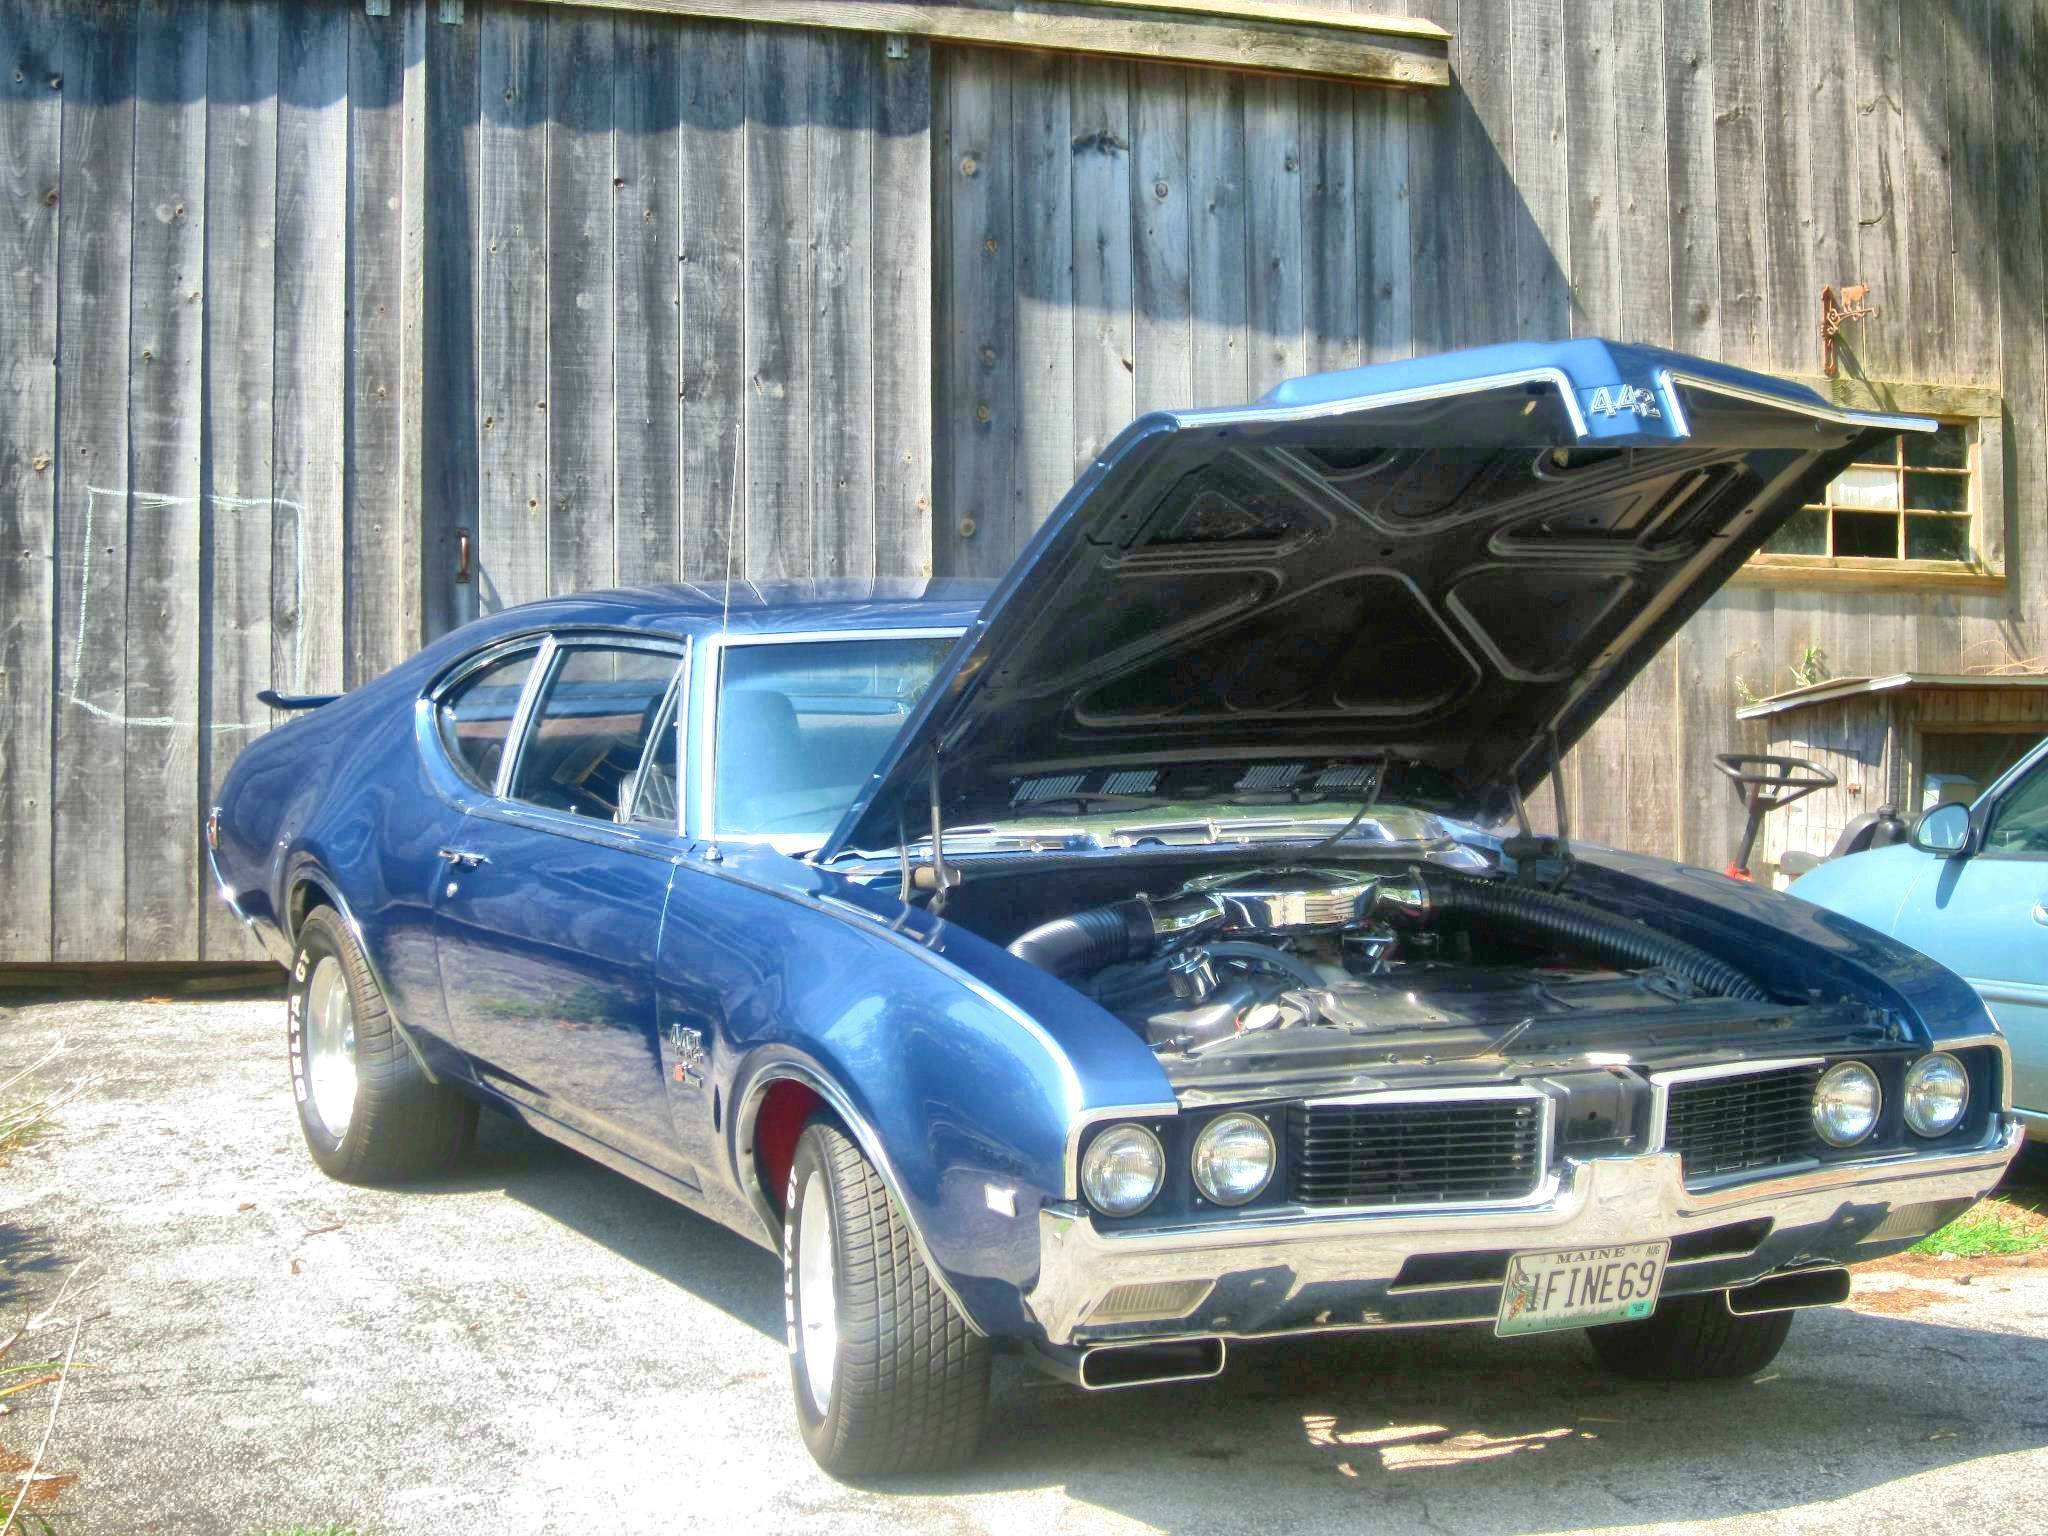 One of the baddest muscle cars ever! [1969 Oldsmobile 442]